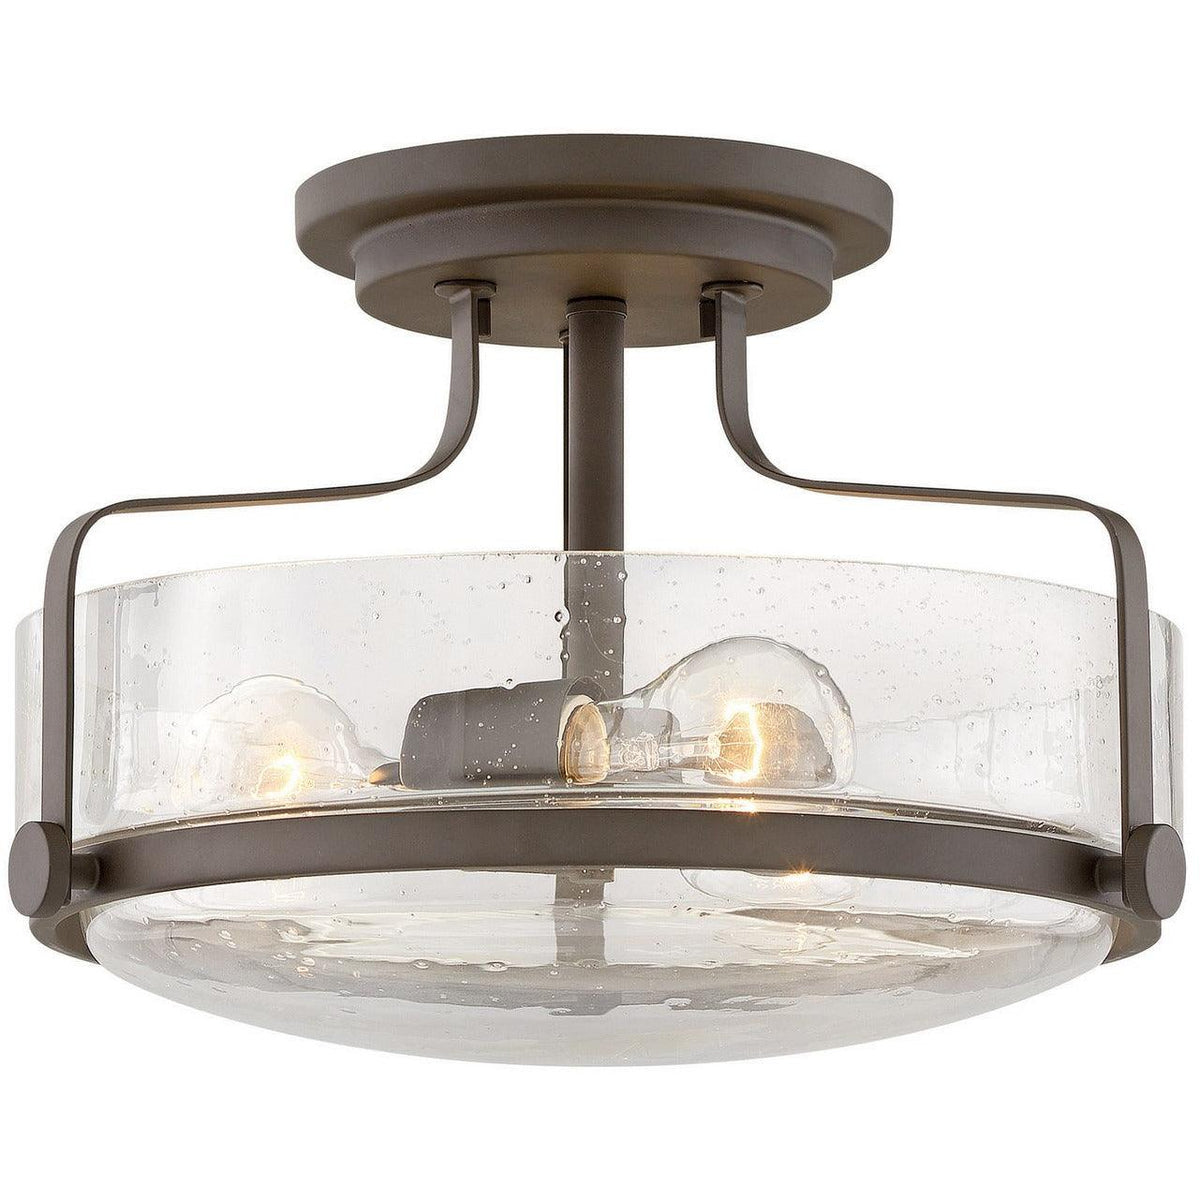 Hinkley Canada - 3641OZ-CS - Three Light Semi-Flush Mount - Harper - Oil Rubbed Bronze With Clear Seedy Glass